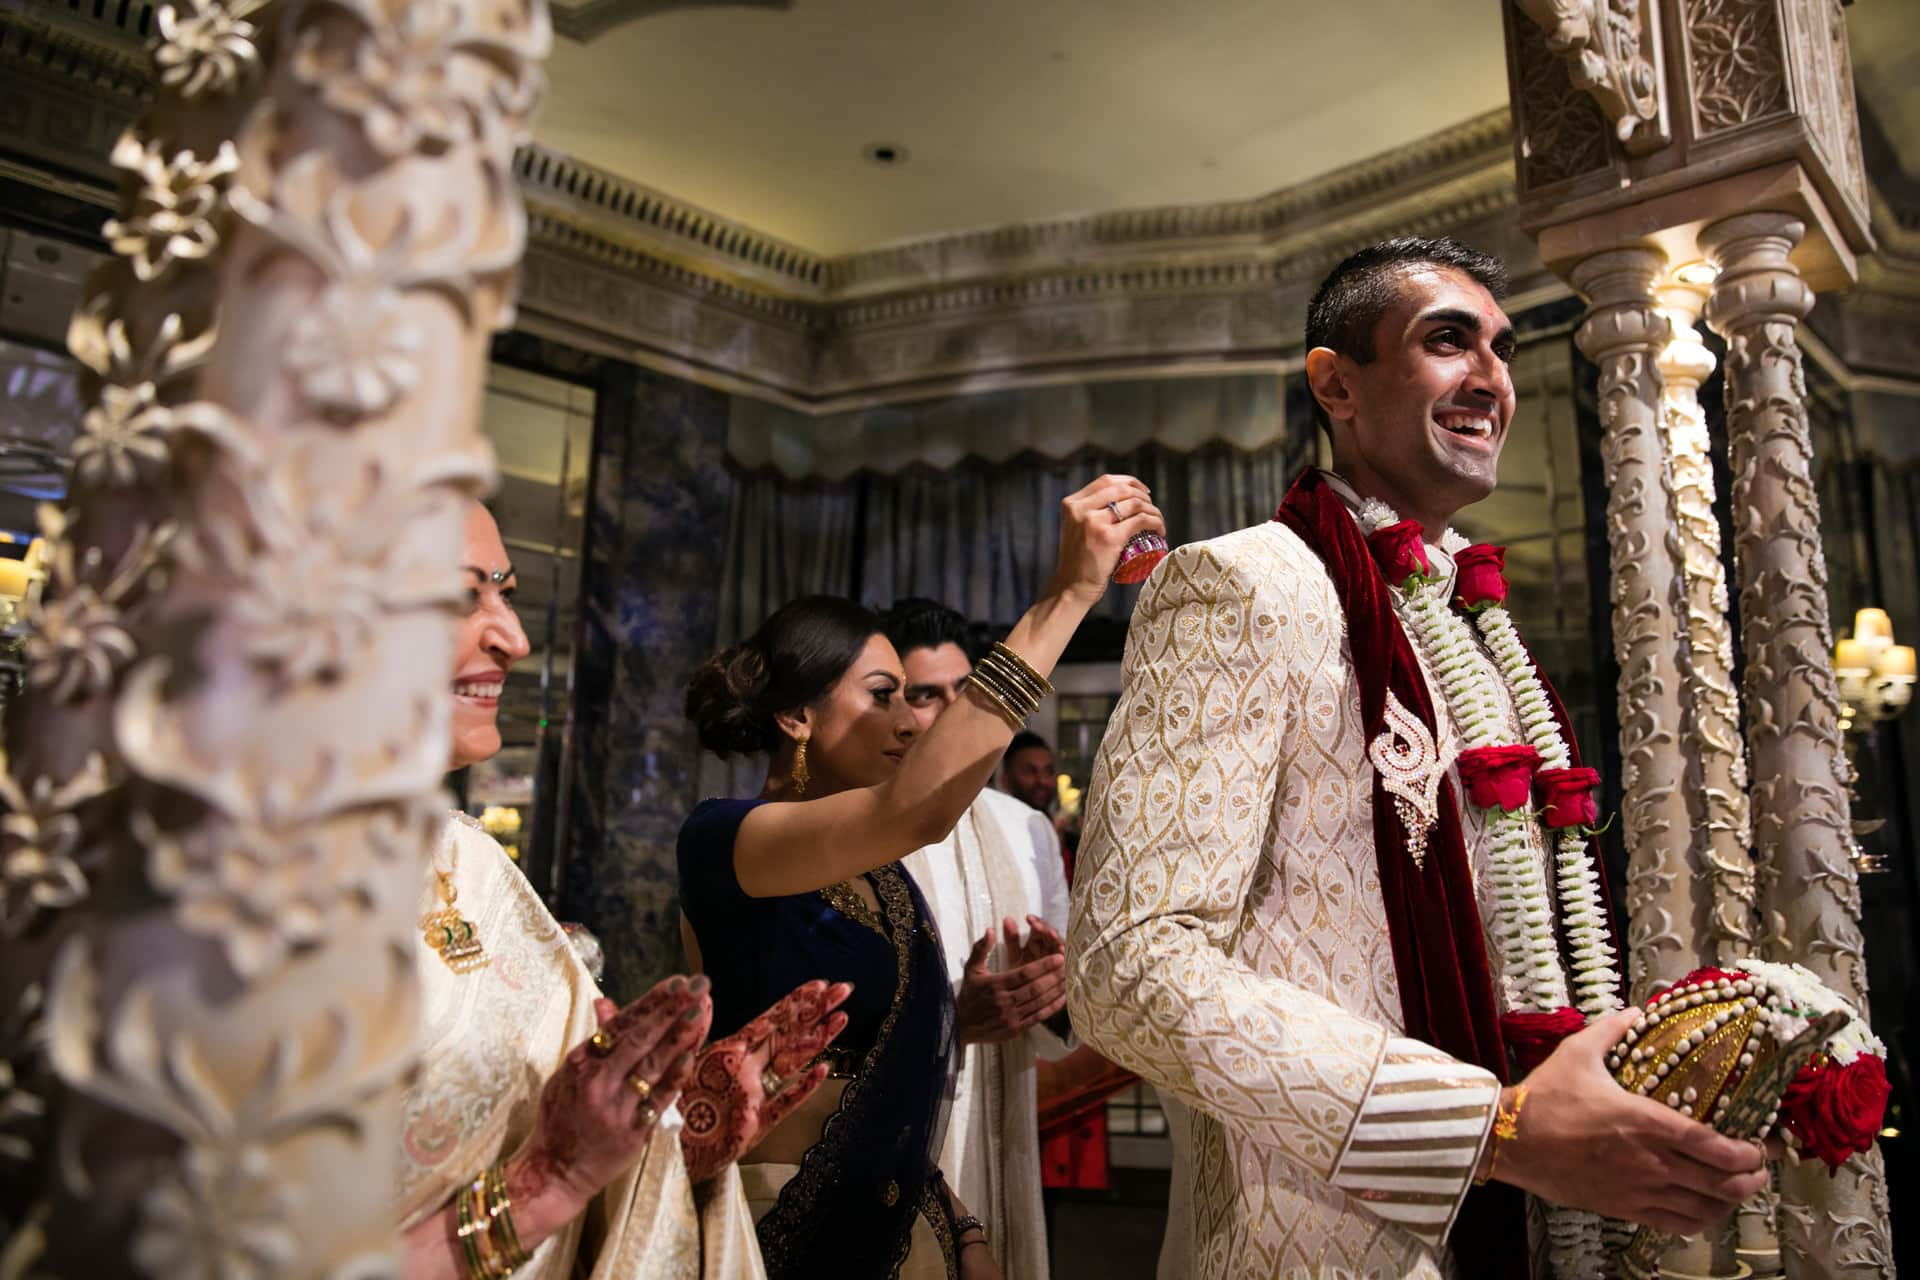 Hindu Wedding Groom's entrance ceremony